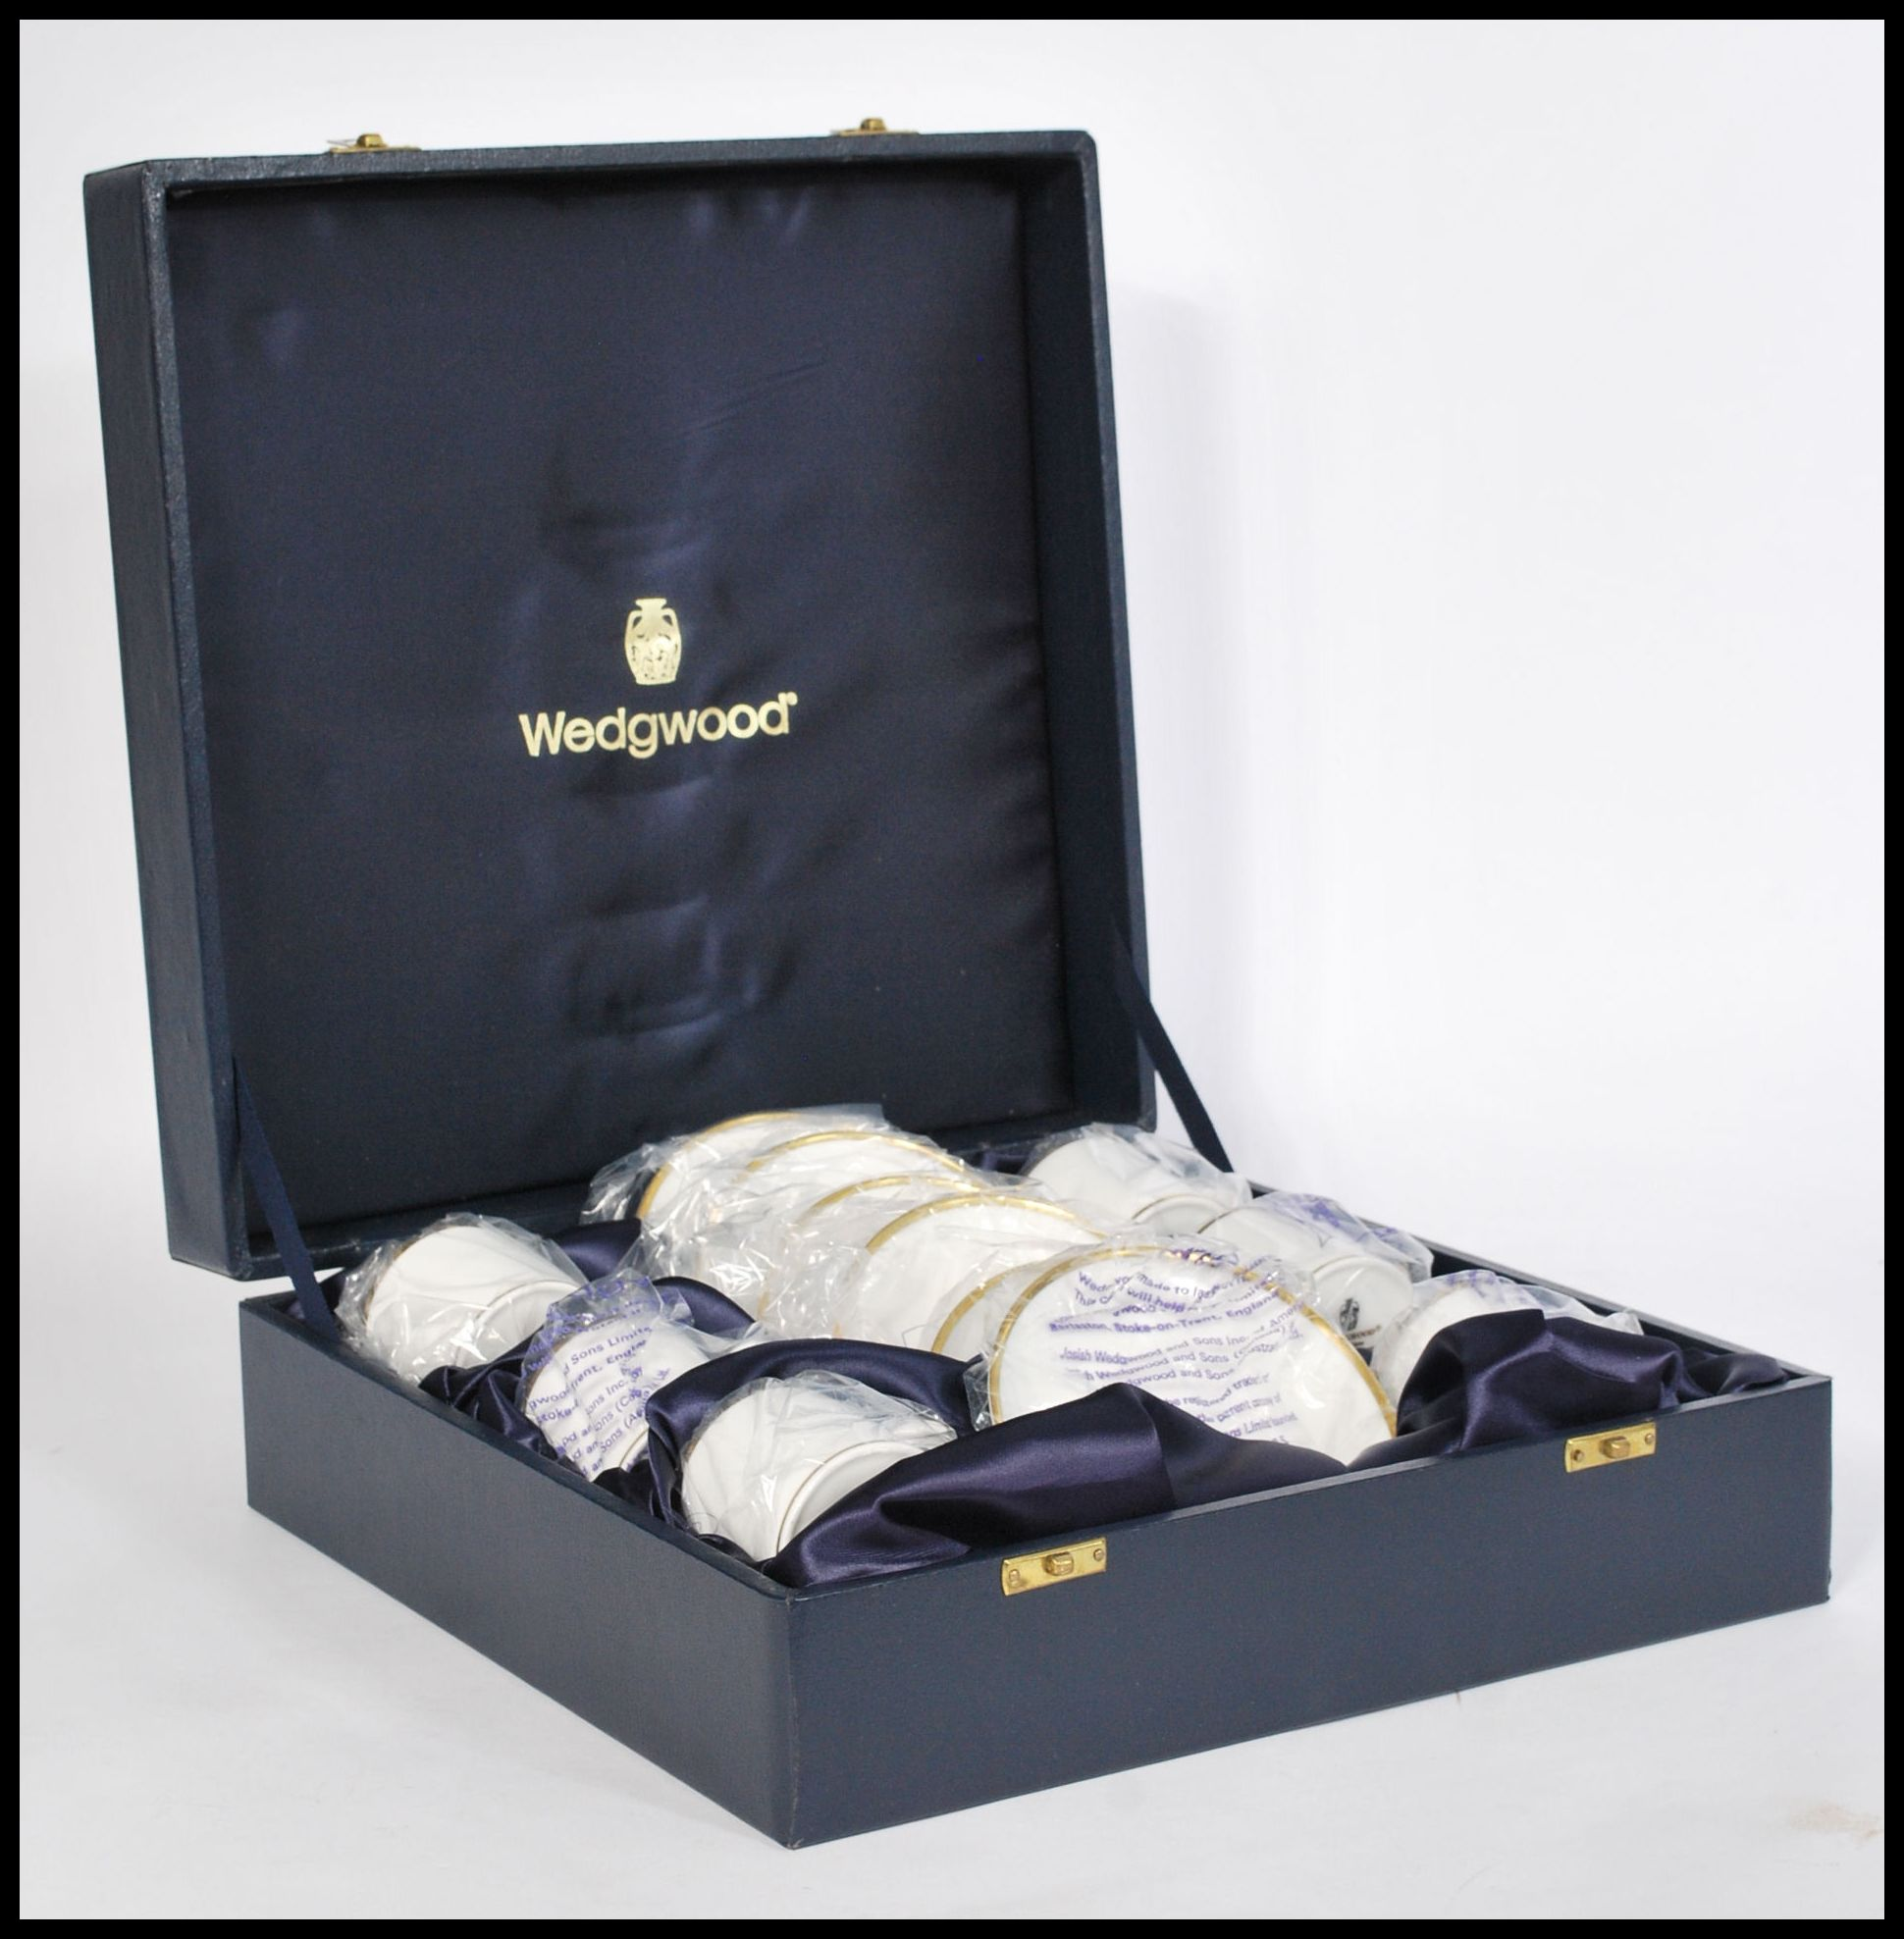 Lot 58 - An unused six persons presentation coffee service by Wedgwood, the hinged case opening to reveal six